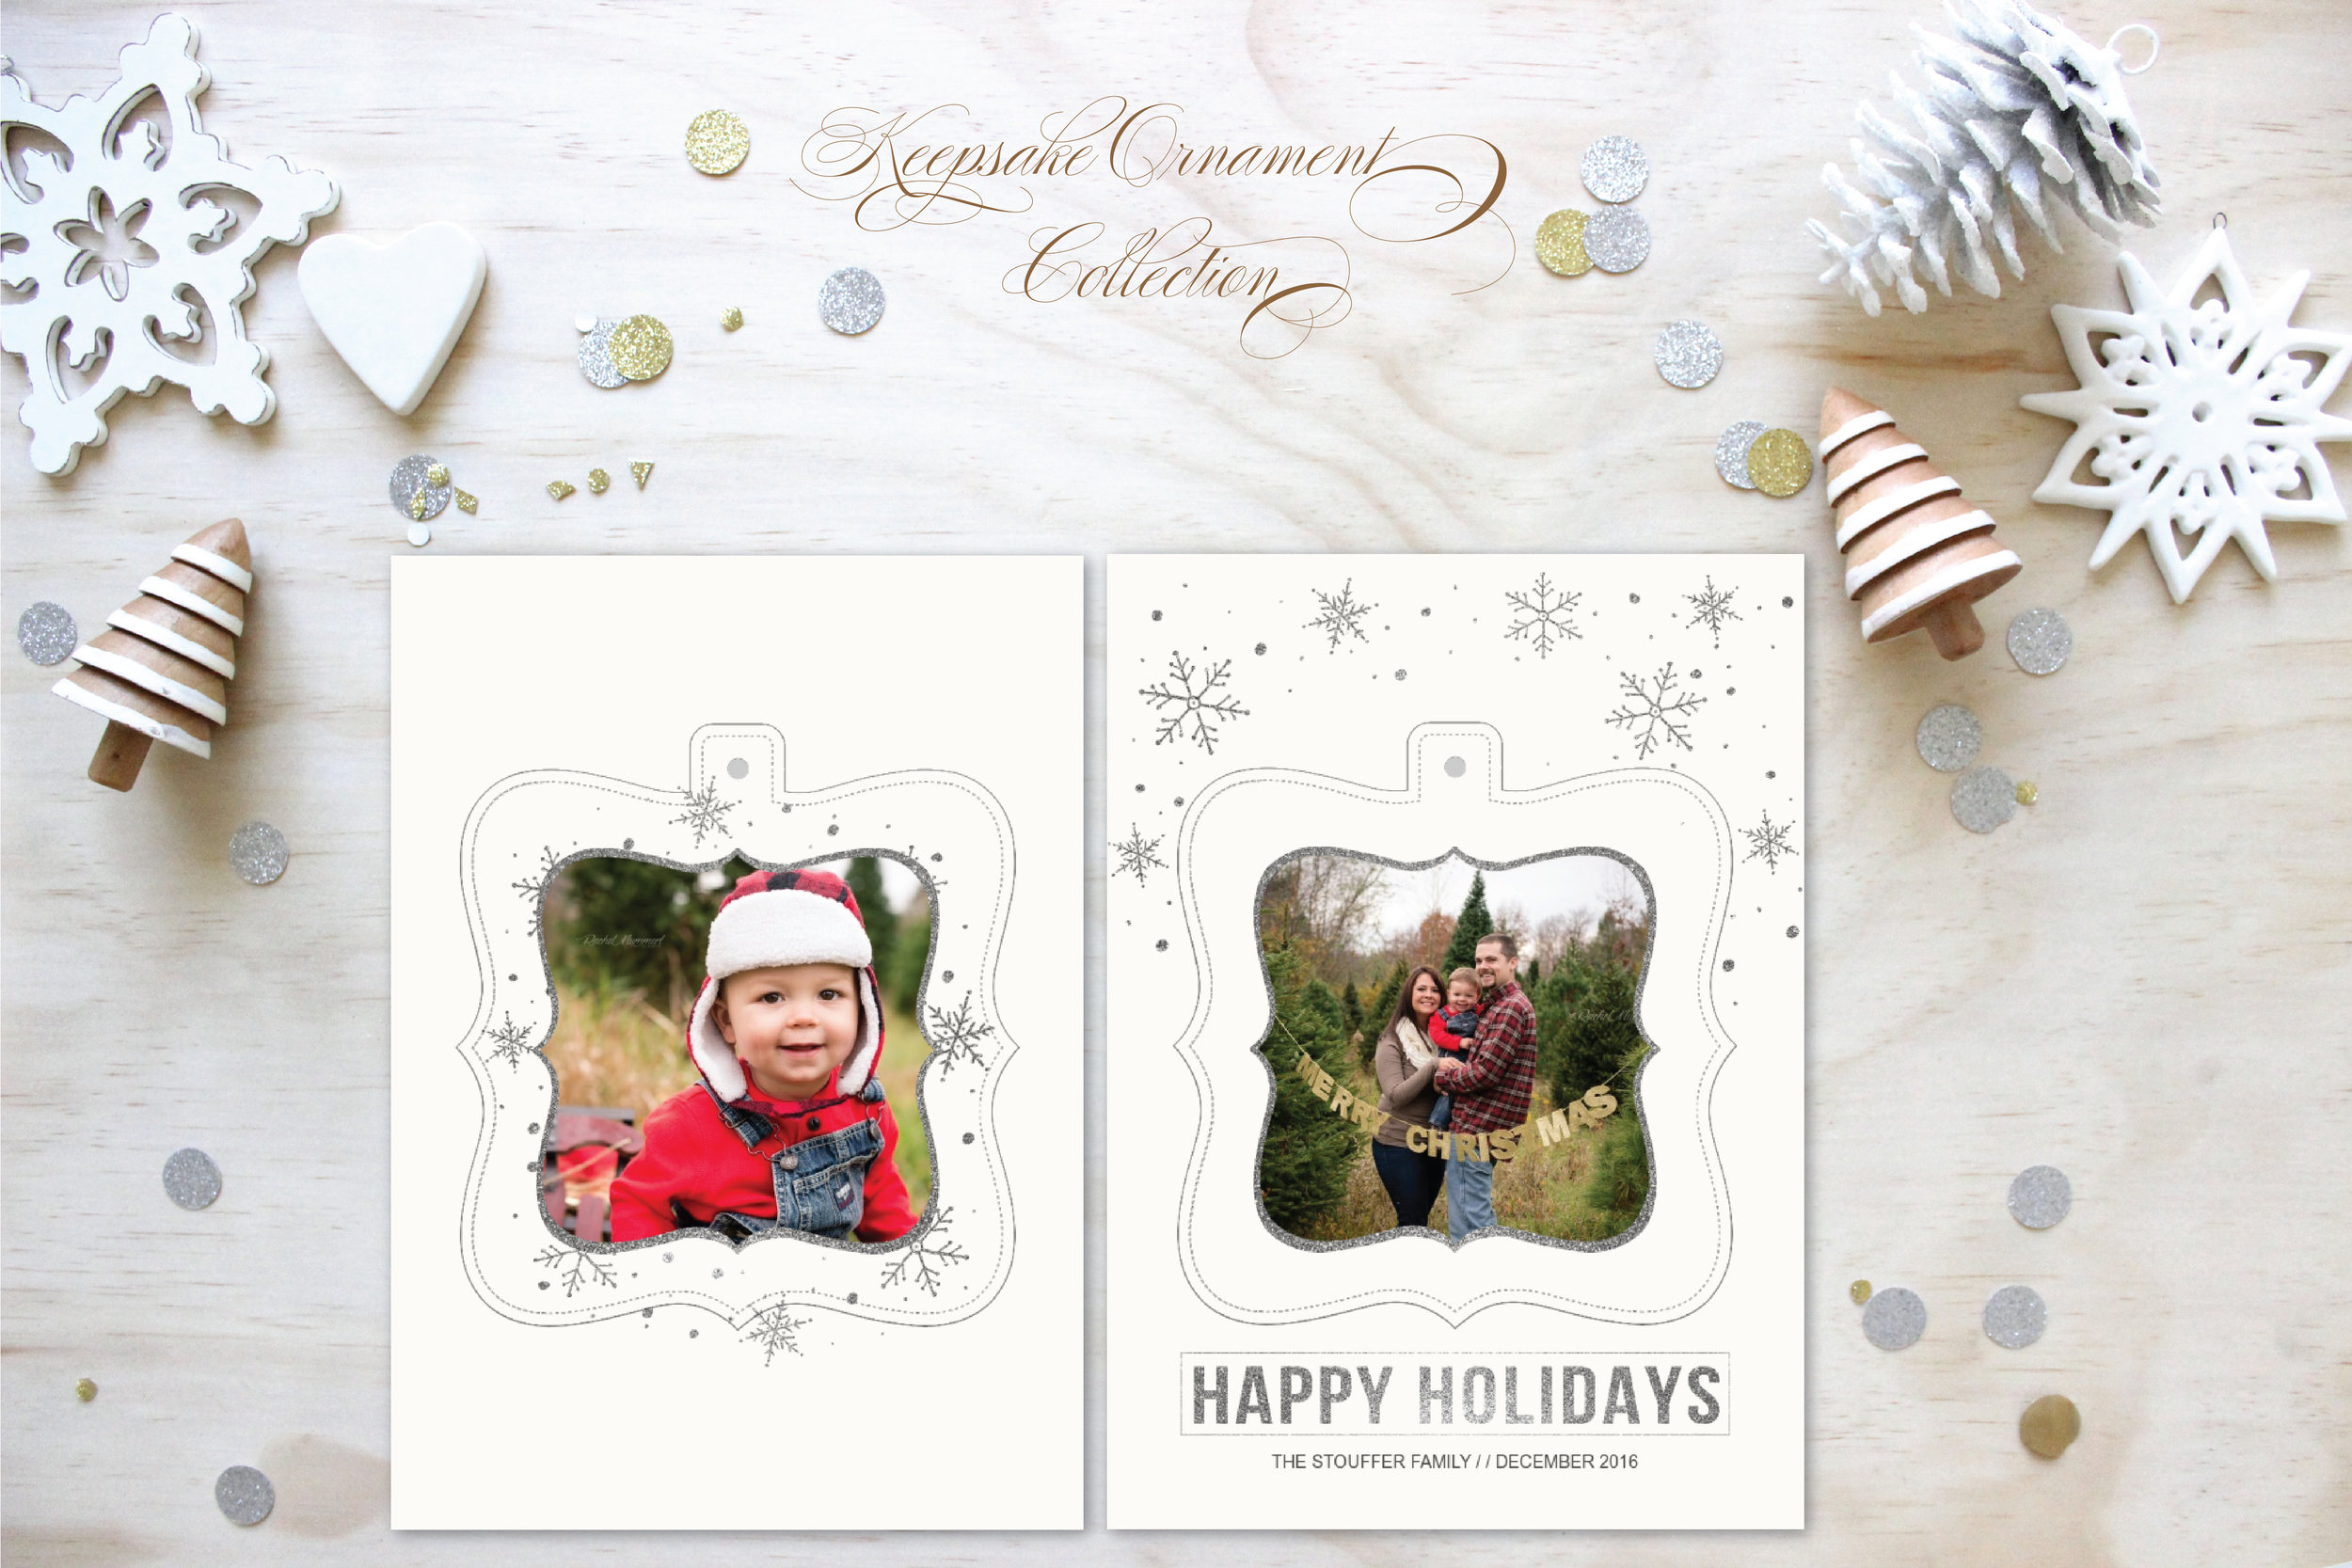 29 - Snowflakes ornament Card.jpg